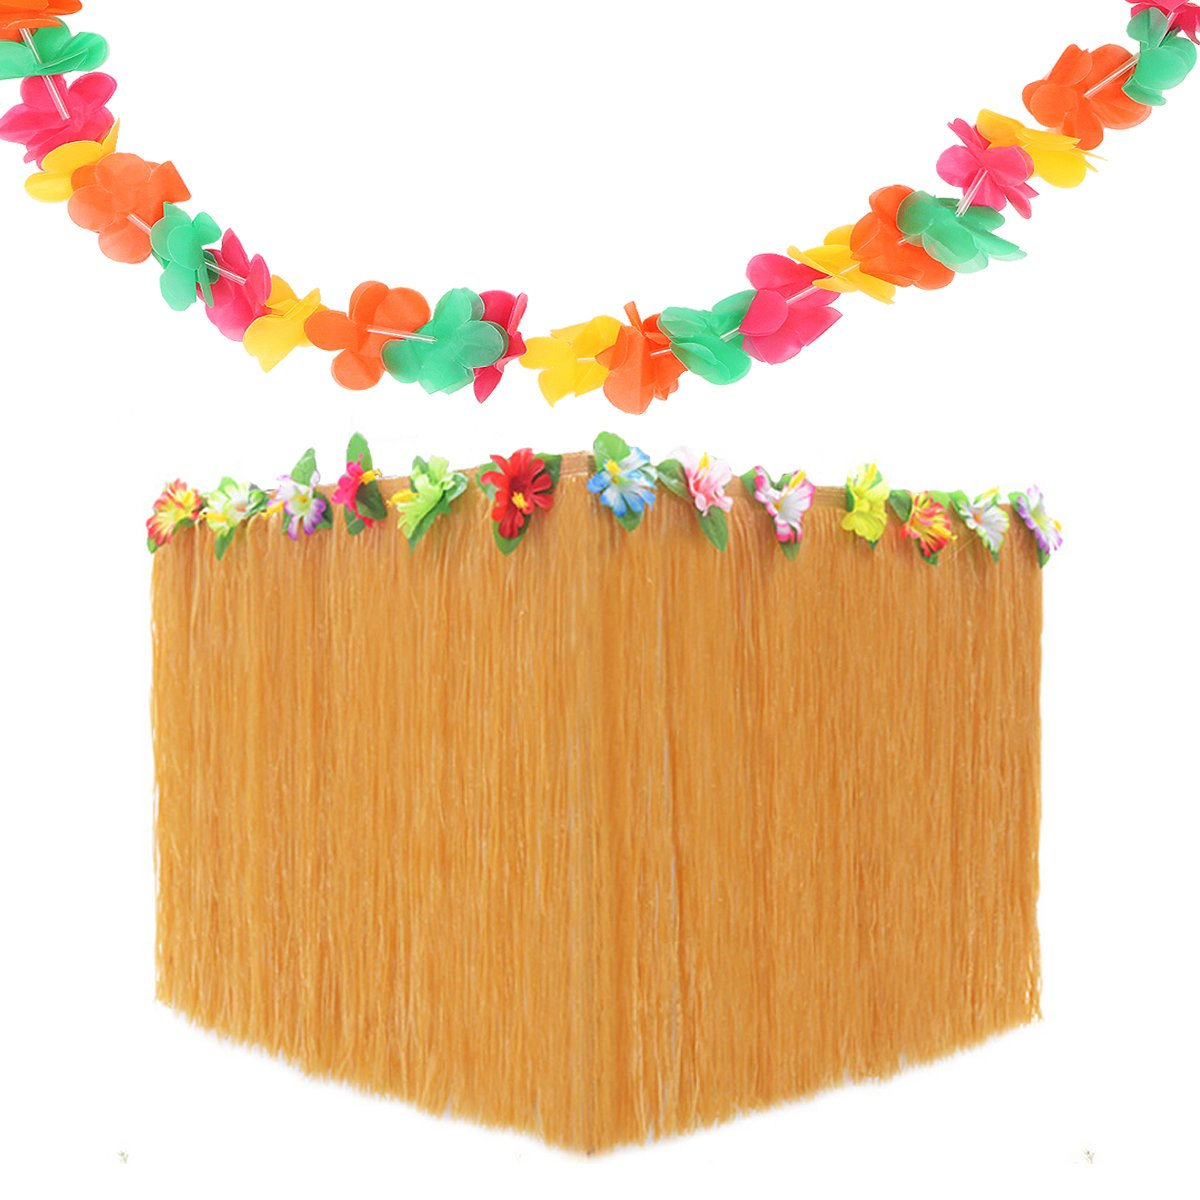 Hawaiian Party Supplies Set Includes 1 Pack 9ft Hawaiian Grass Table Skirt and 1 Pack 8.8ft Flowers Garland for Summer Luau Beach Party Decoration